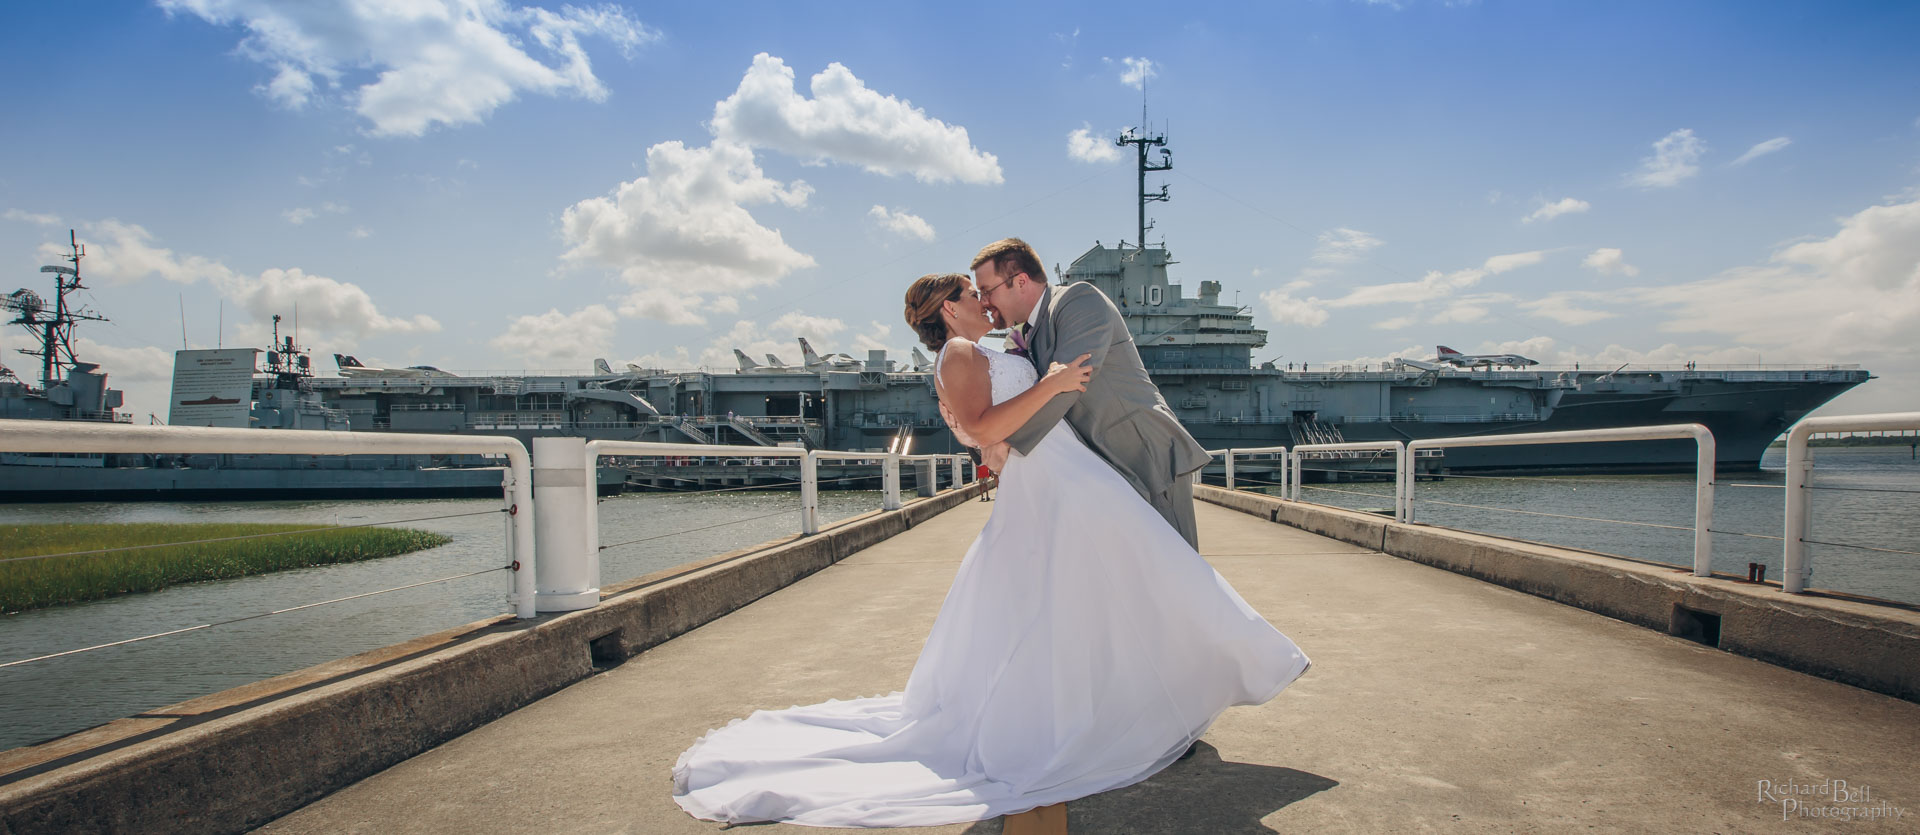 Bride and Groom at Yorktown